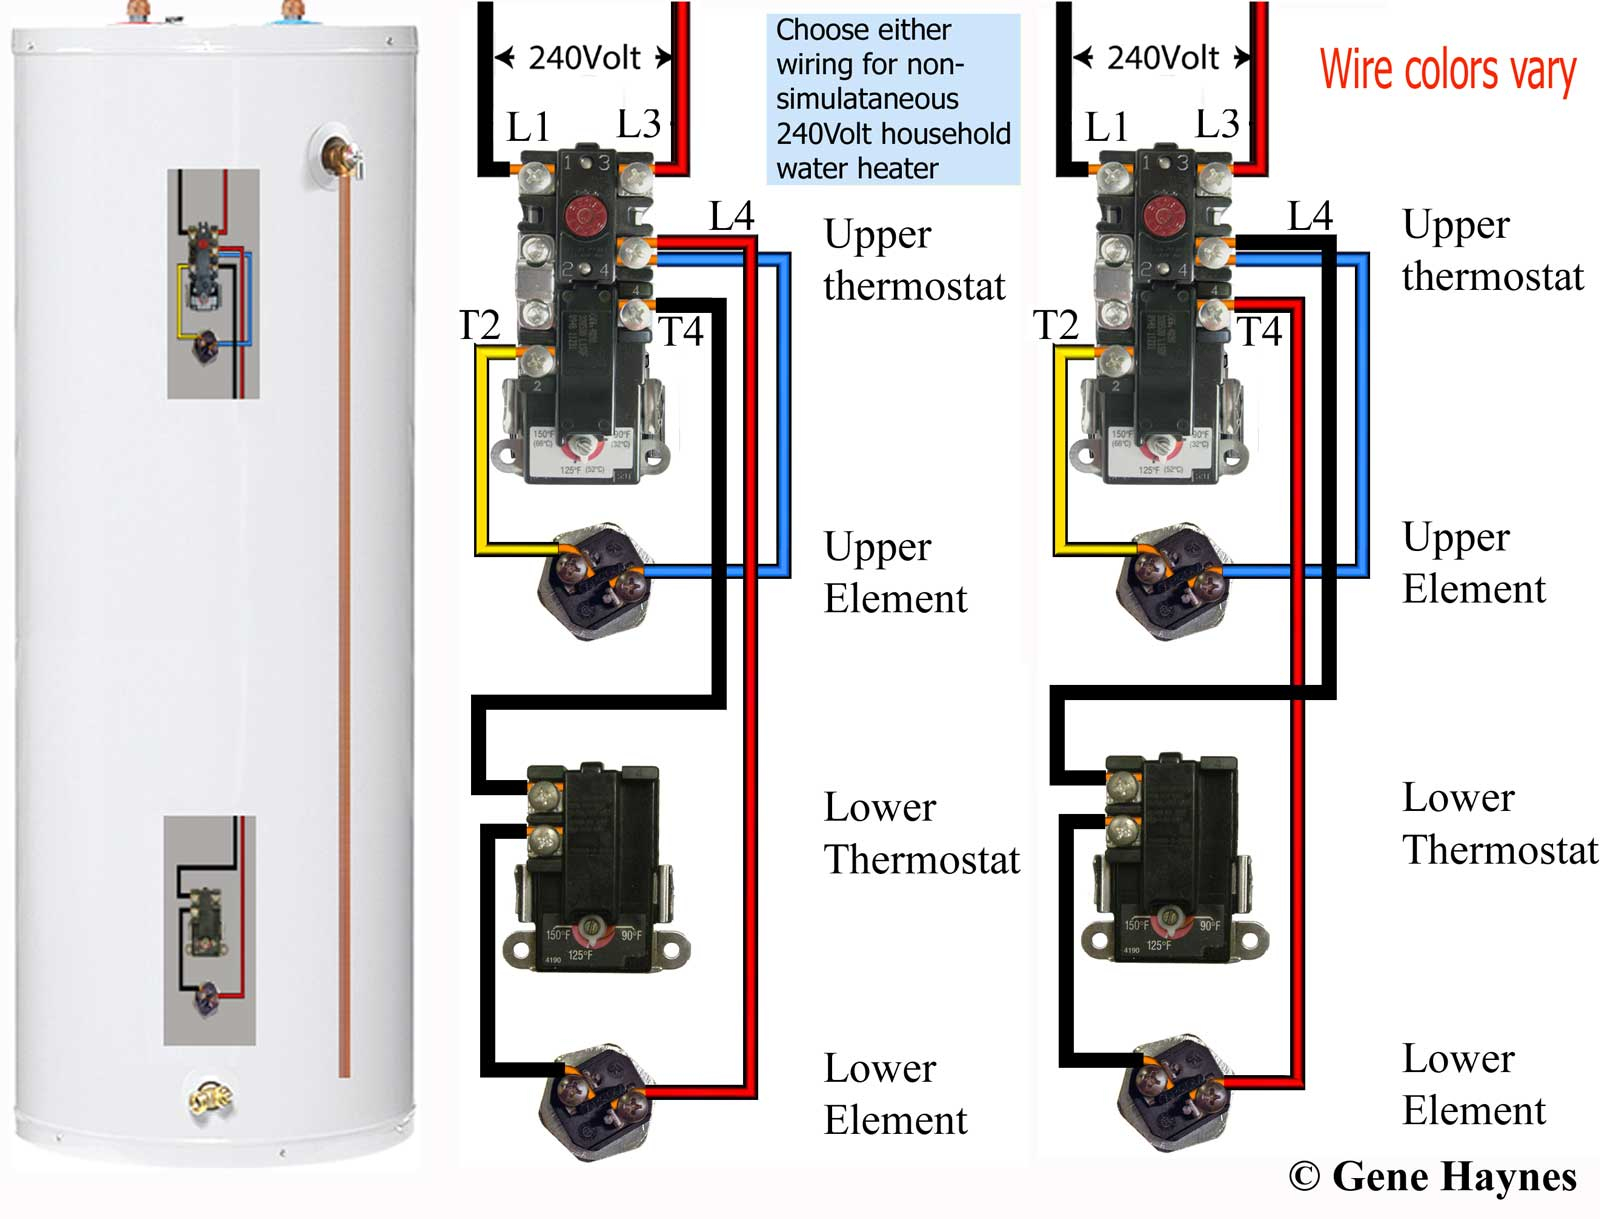 How To Wire Water Heater Thermostats - Electric Water Heater Wiring Diagram